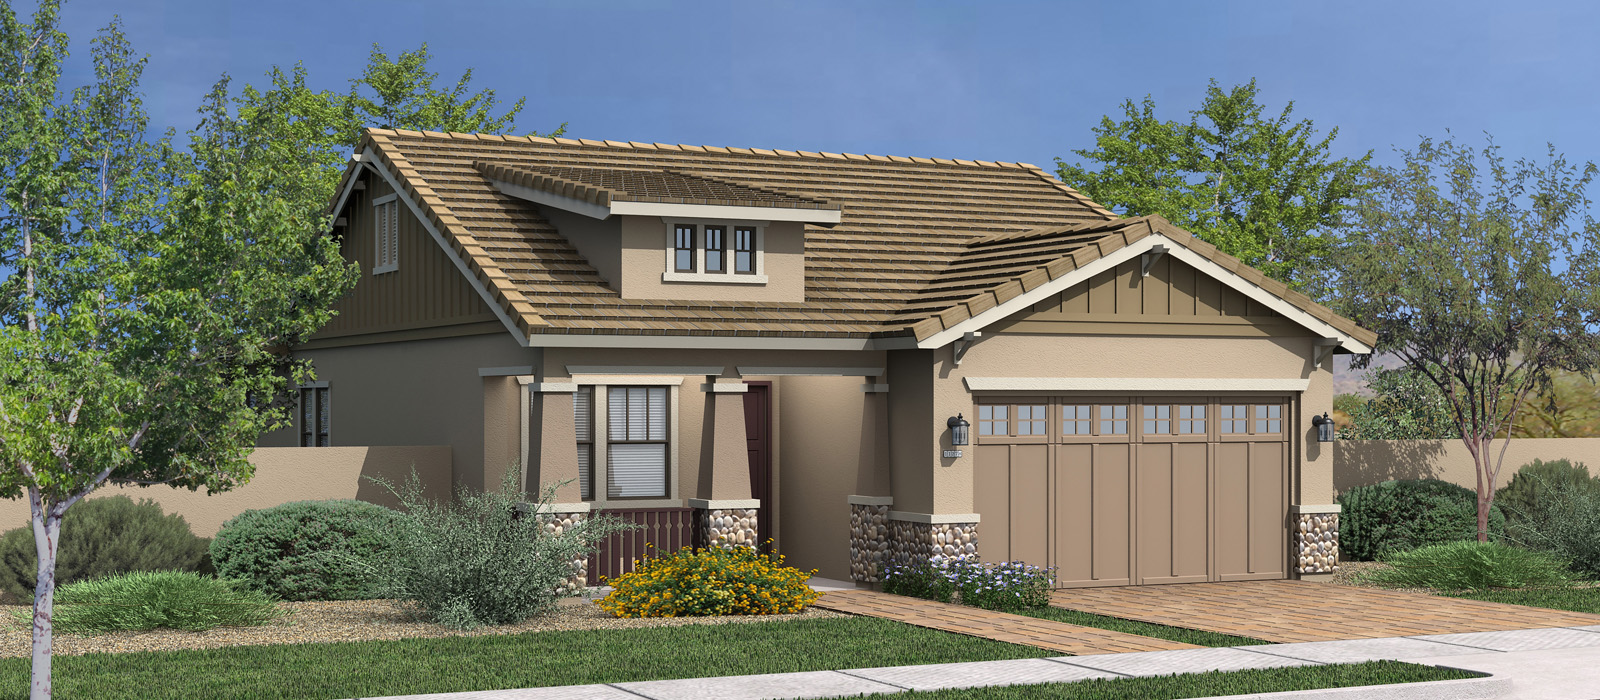 Cottonwood Az Elevation : Cottonwood lakeview trails at morrison ranch by fulton homes